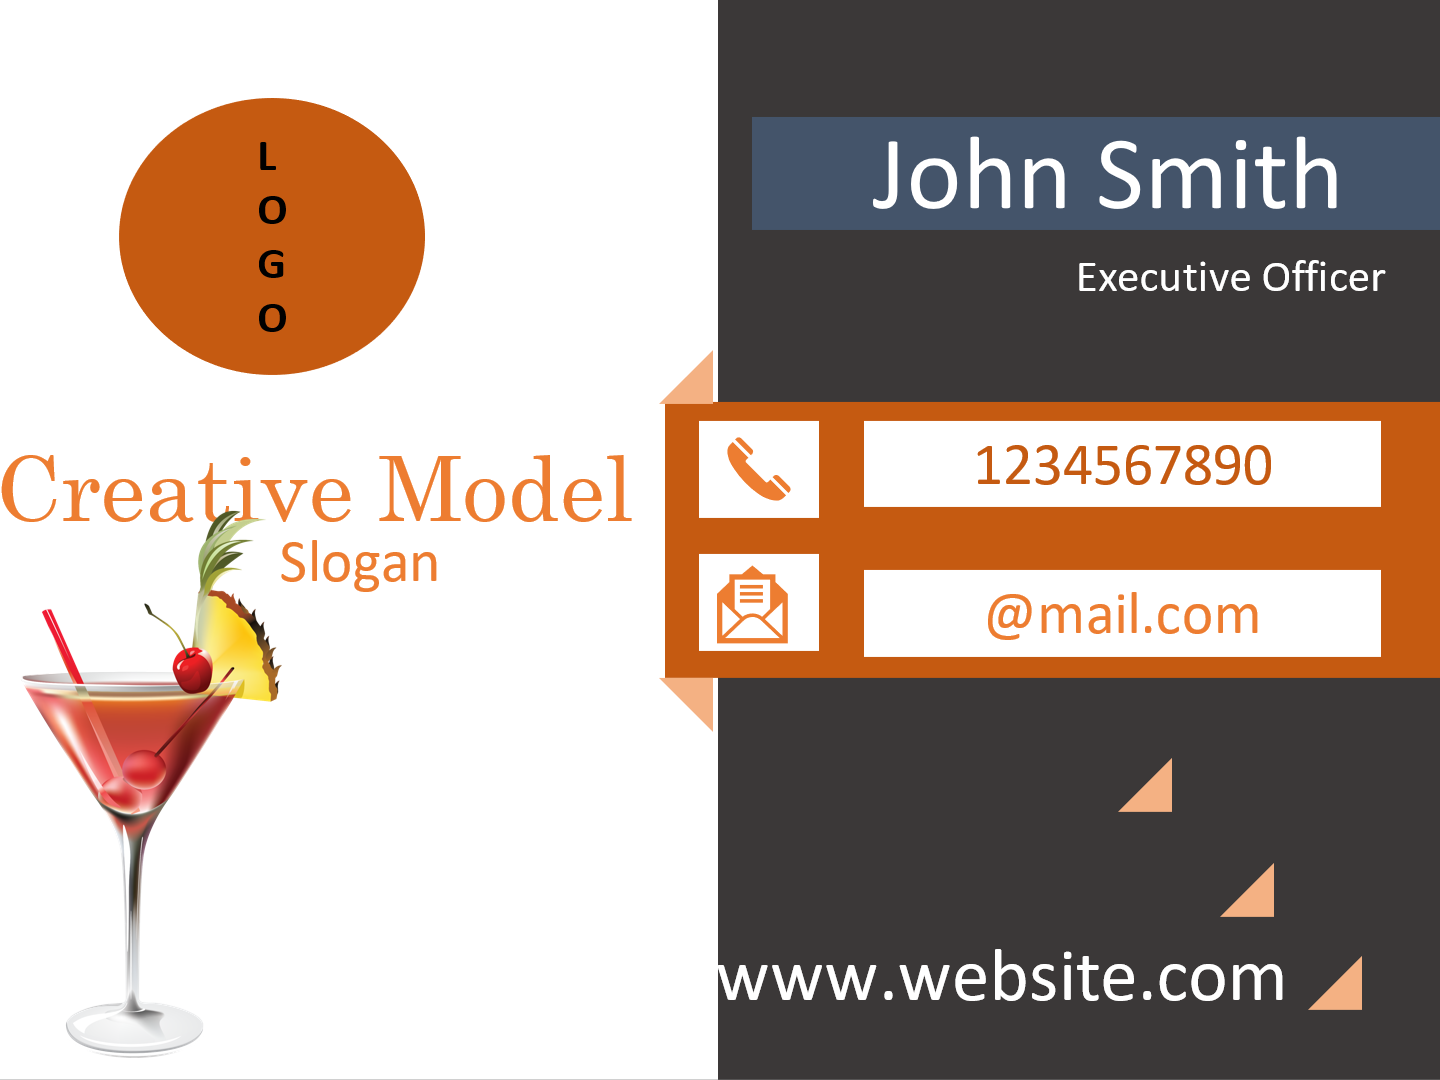 I will create 2 different business cards design concepts